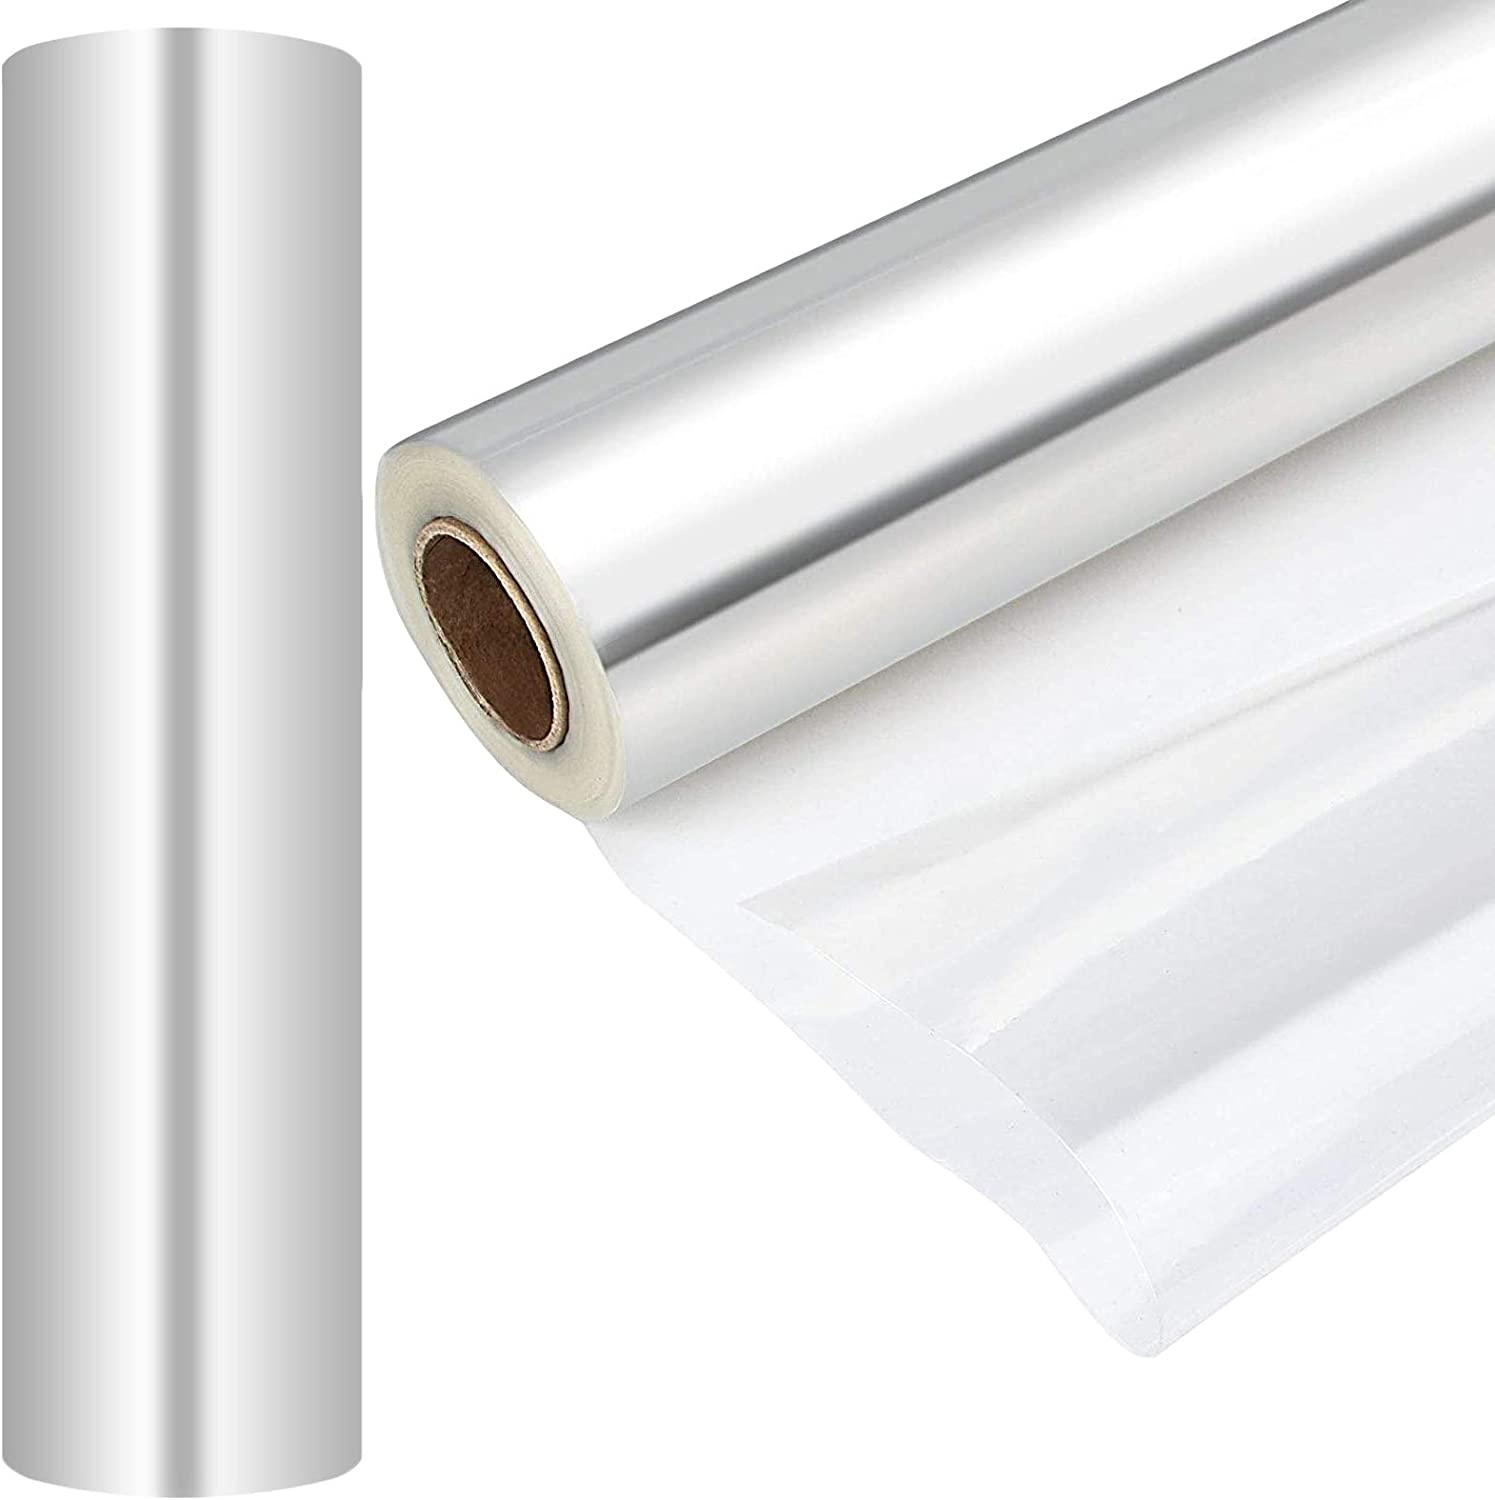 2 Pack Clear Cellophane Wrap Roll 100 FT x 31-1/2Inch Clear Wrap Cellophane Bags 30 Mic Thick Clear Wrapping Paper to Wrap Gift Baskets Food Safe Cello Rolls